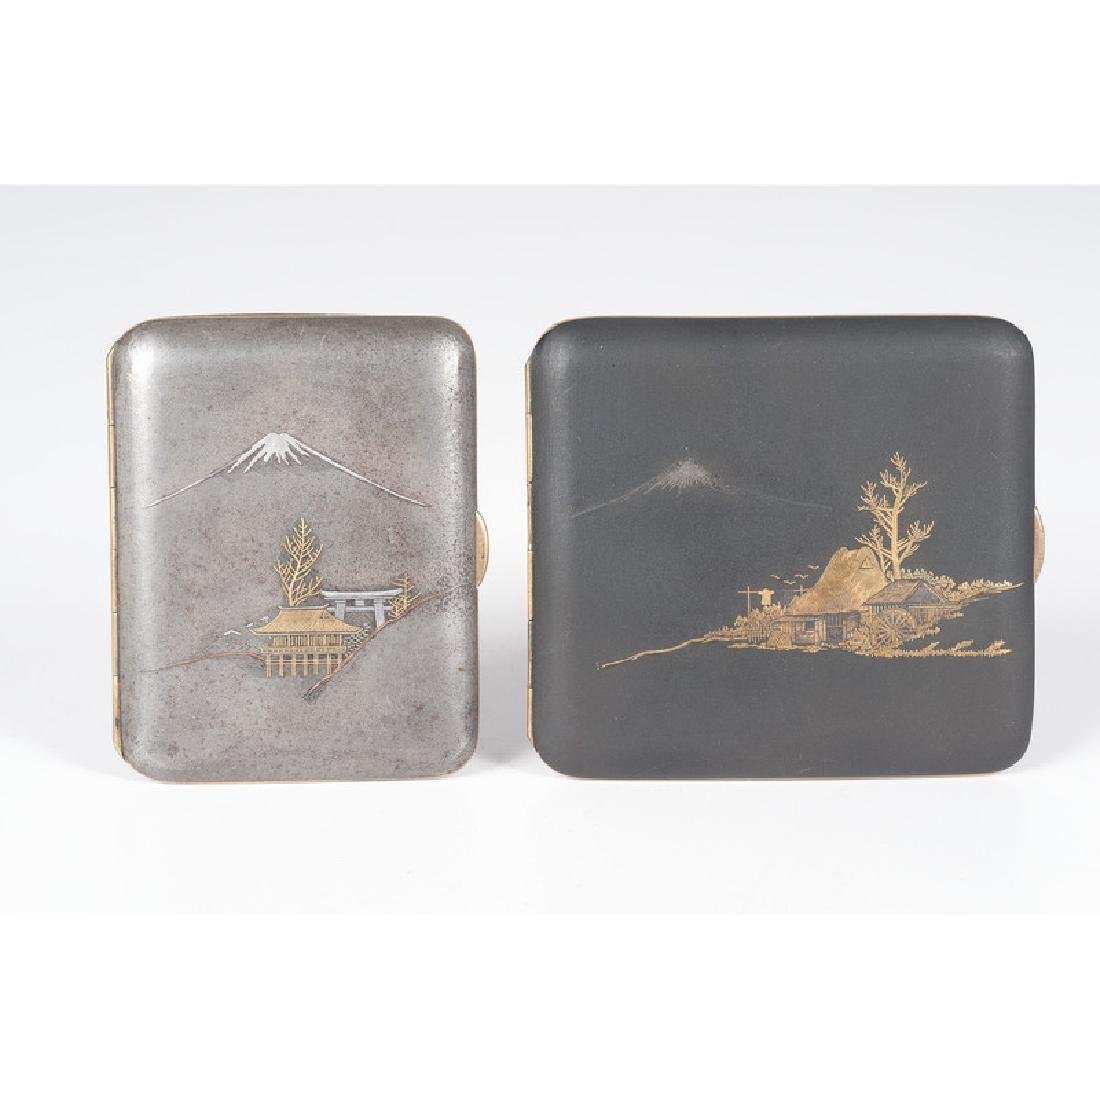 Japanese Calling Card Cases with Silver and Gold Inlay